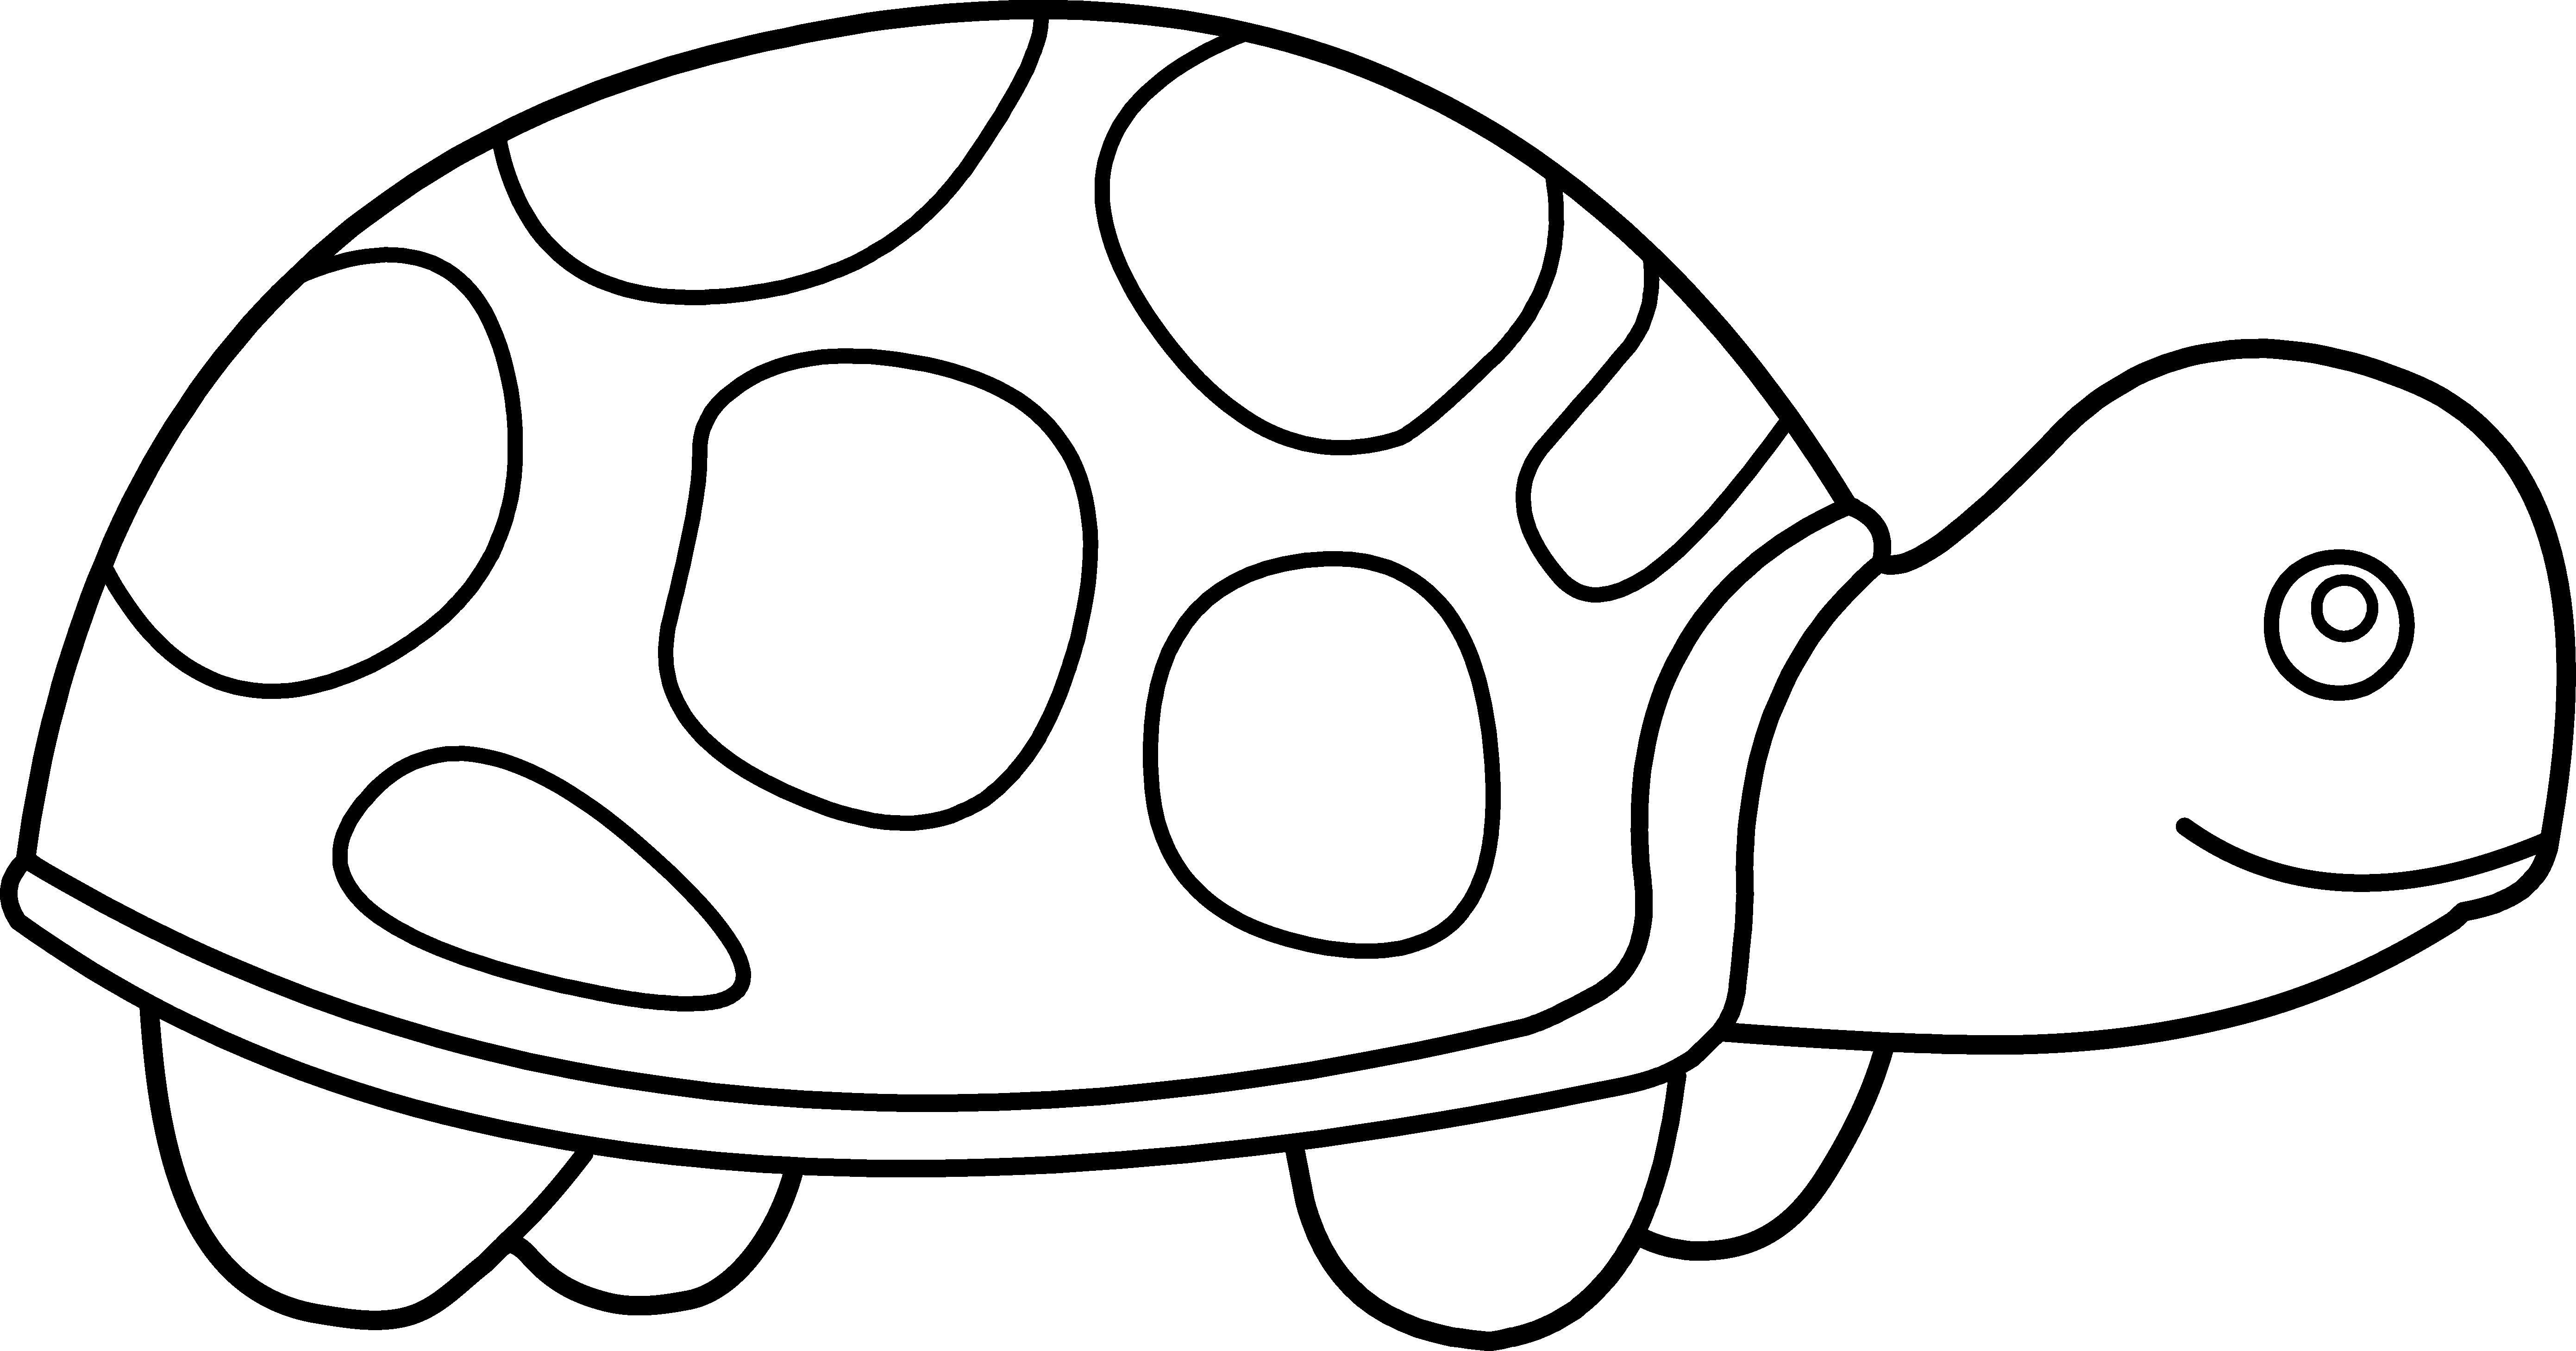 coloring clipart for kids clipart panda free clipart images for kids coloring clipart